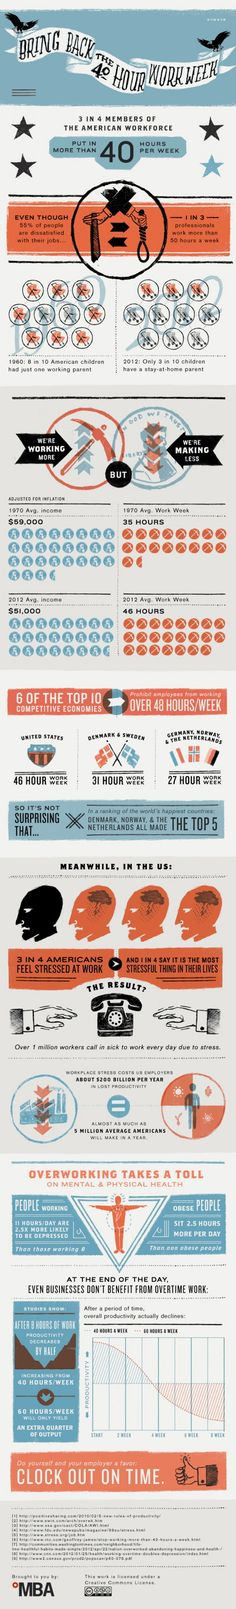 Infographic: 3 in 4 Americans work more than 40 hours a week. Is it time to bring back the 40-hour work week?